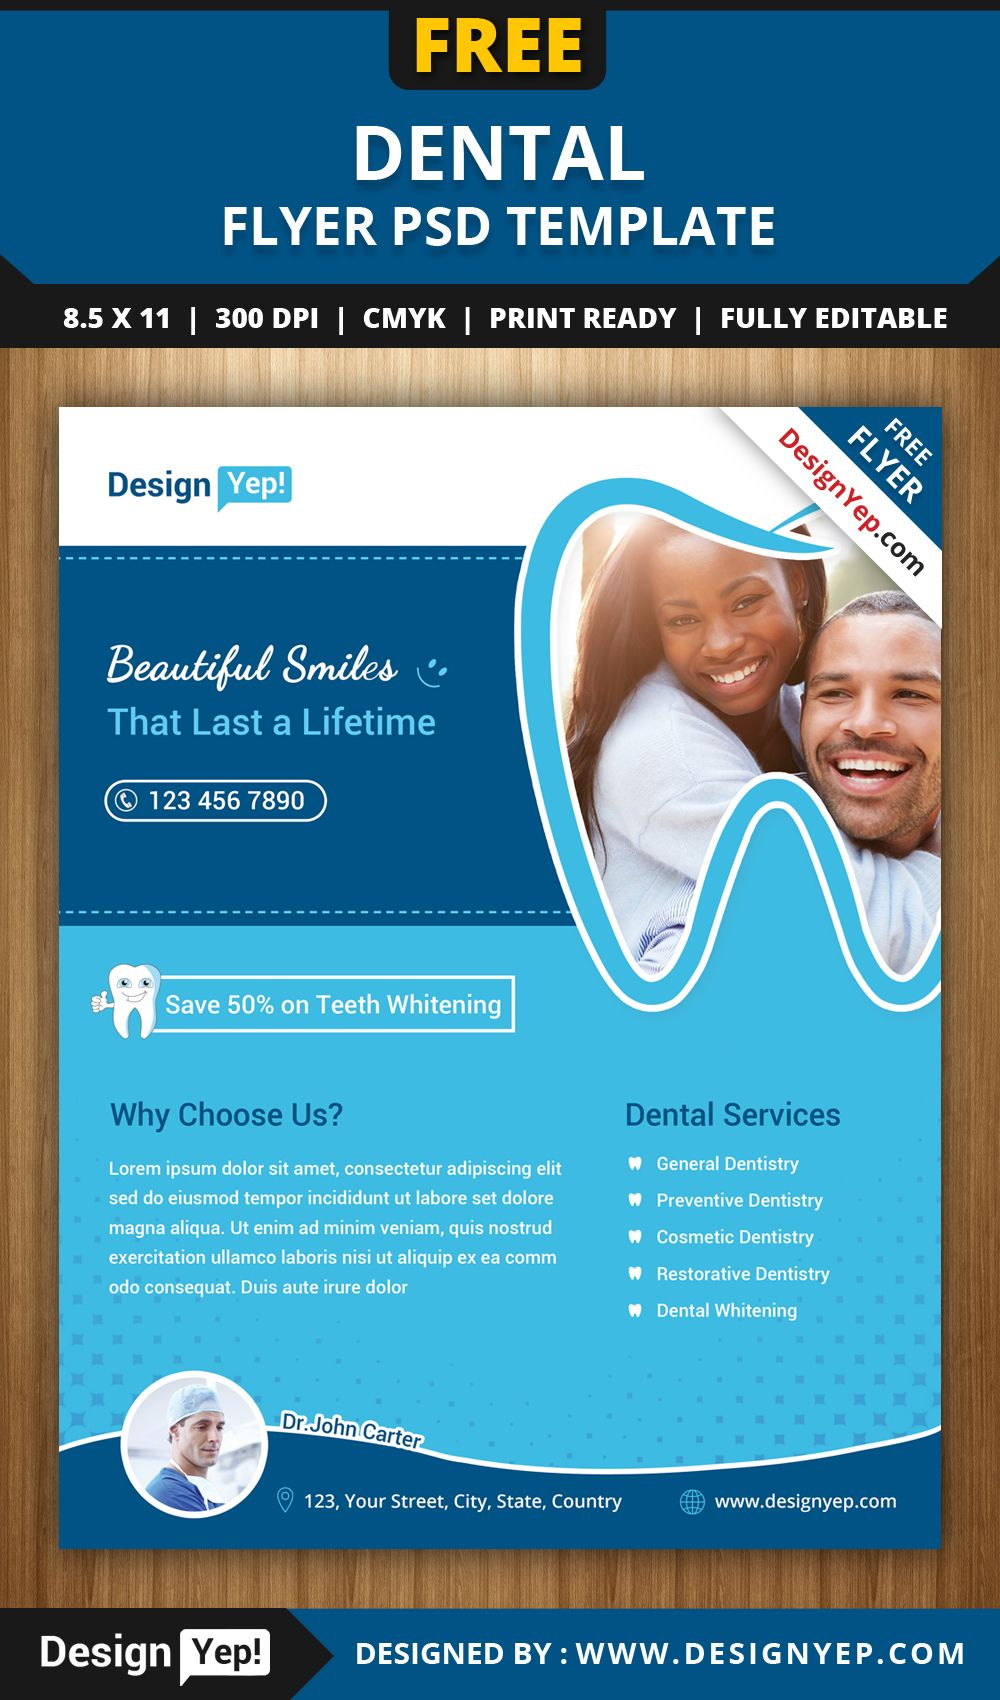 Free-Dental-Flyer-PSD-Template-1414-Designyep | Free Flyers ...